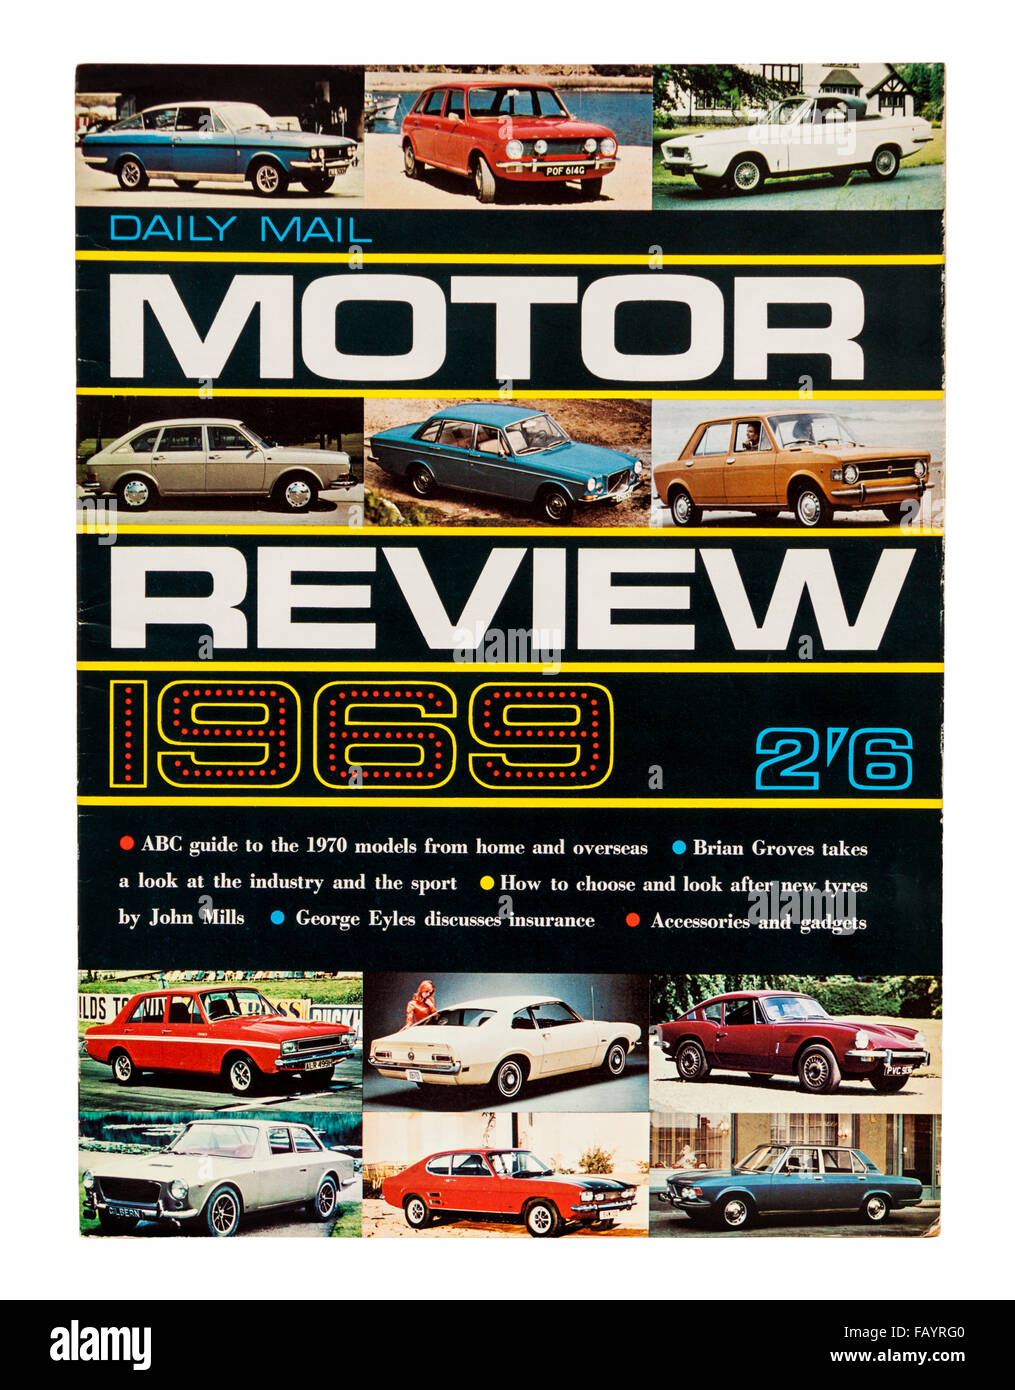 1969 Daily Mail Motor Review magazine, featuring a guide to the 1970 model cars available in the UK - Stock Image